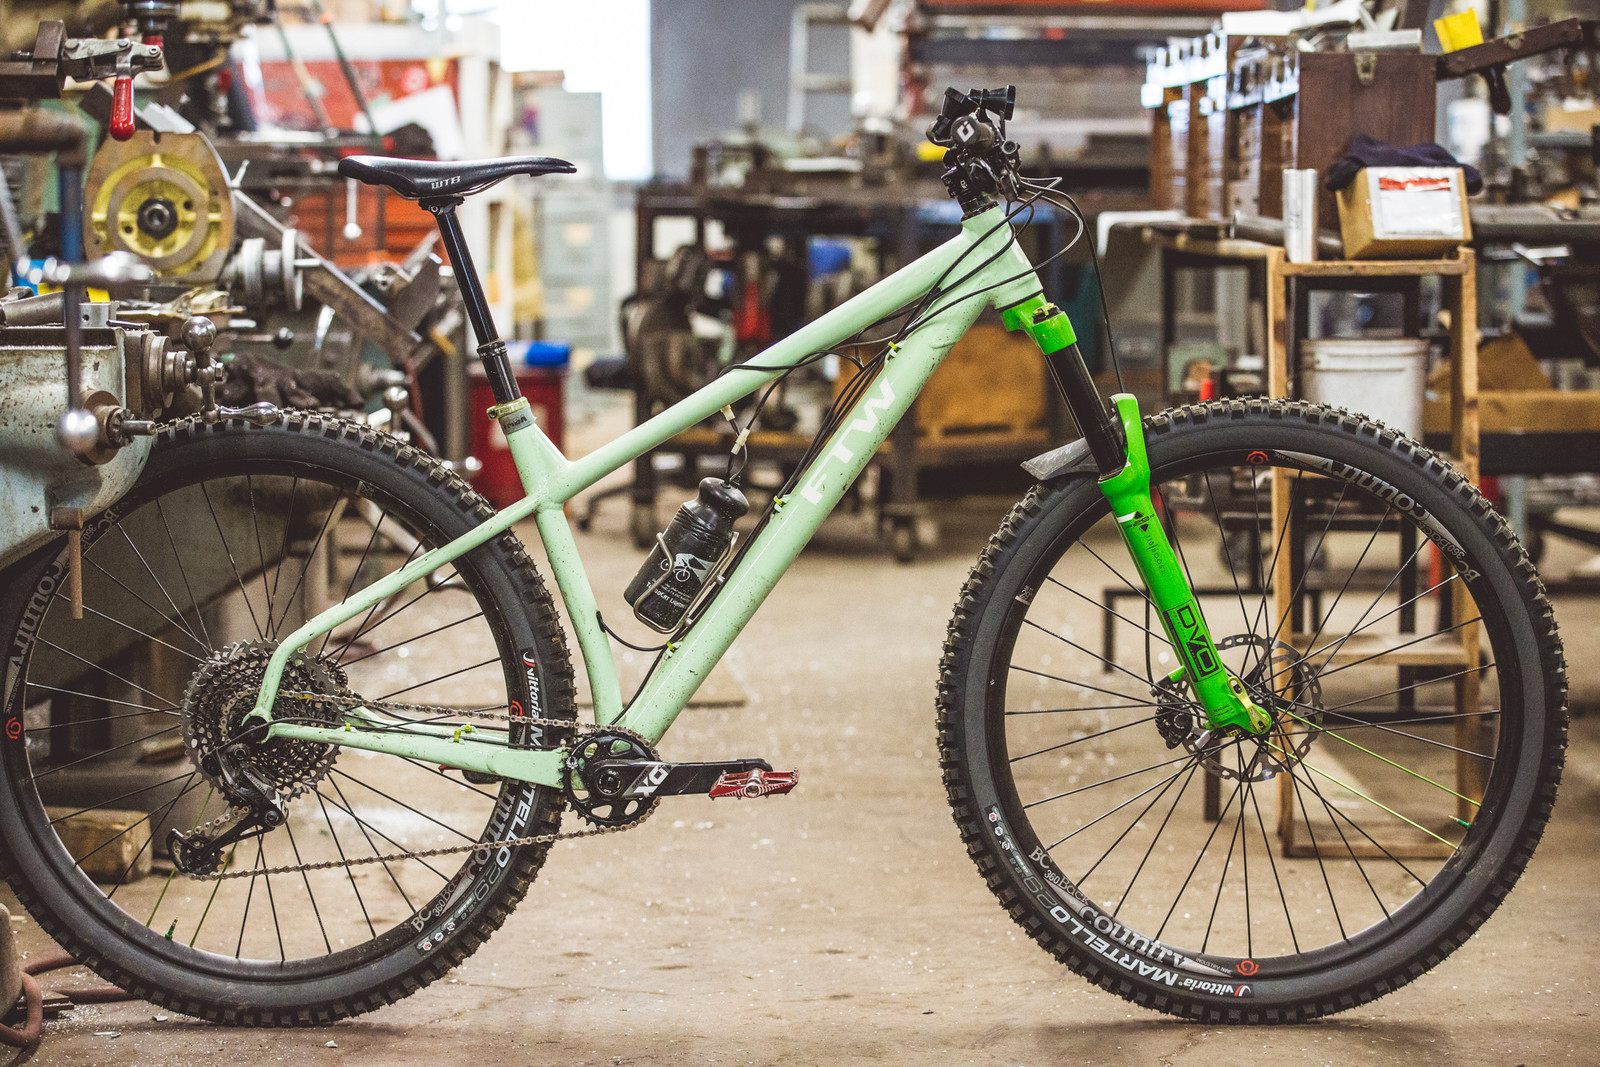 Frank's personal XC bike. It's really light, but really strong - and a 29'er!